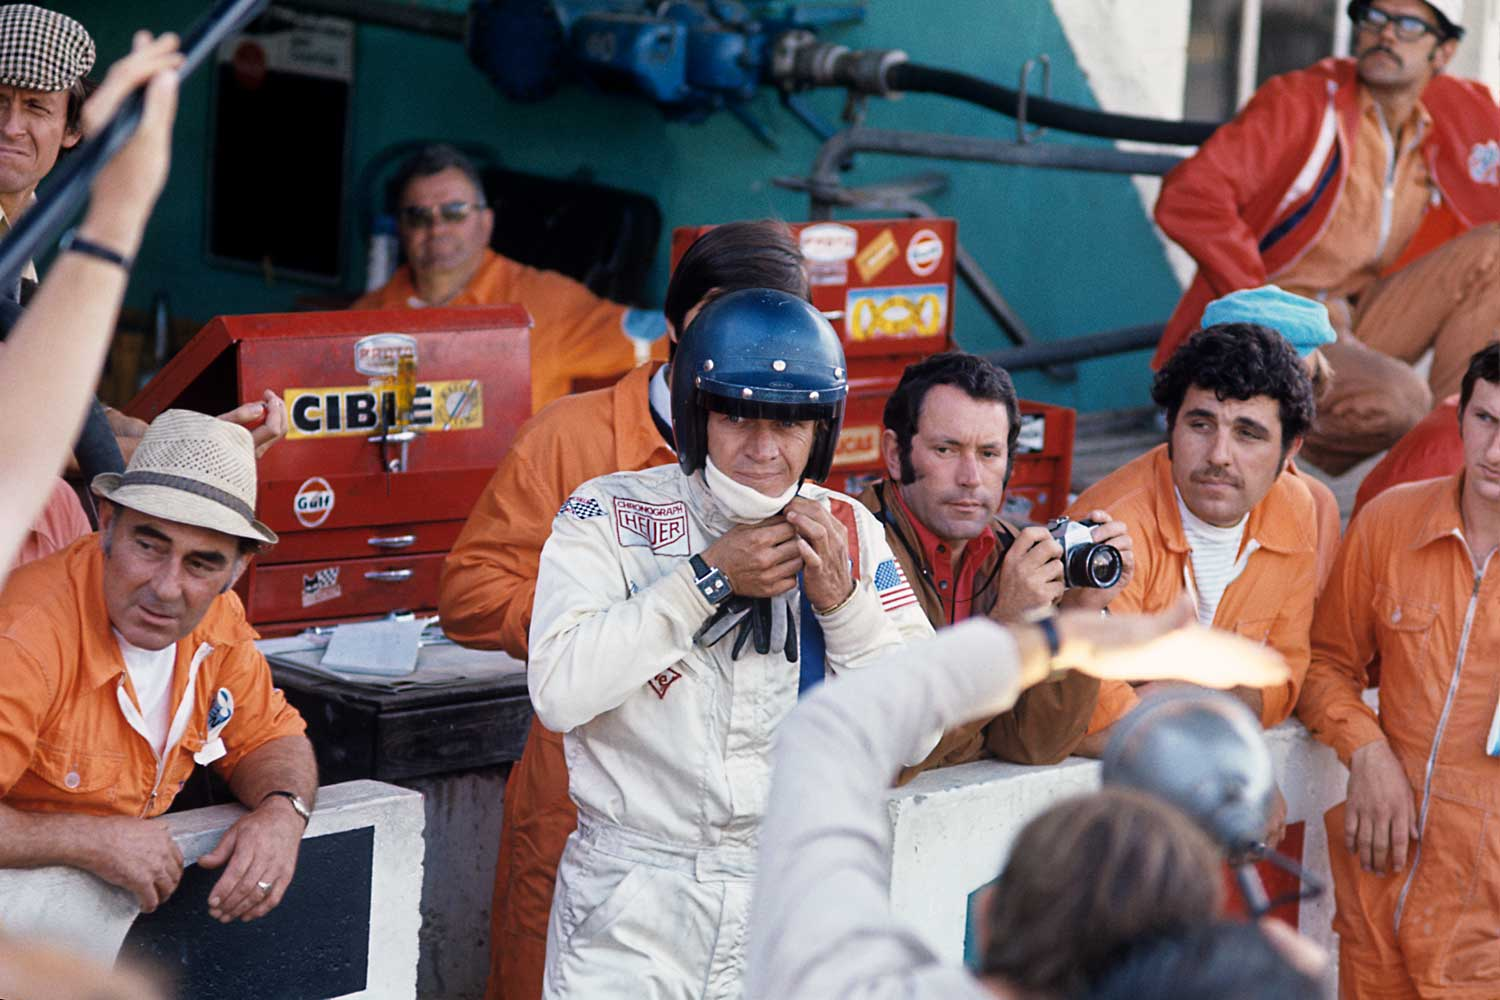 Steve McQueen styled like Joseph Siffert for the Le Mans movie, with a Monaco 1133 B on his wrist (Image: Bernard Cahier)